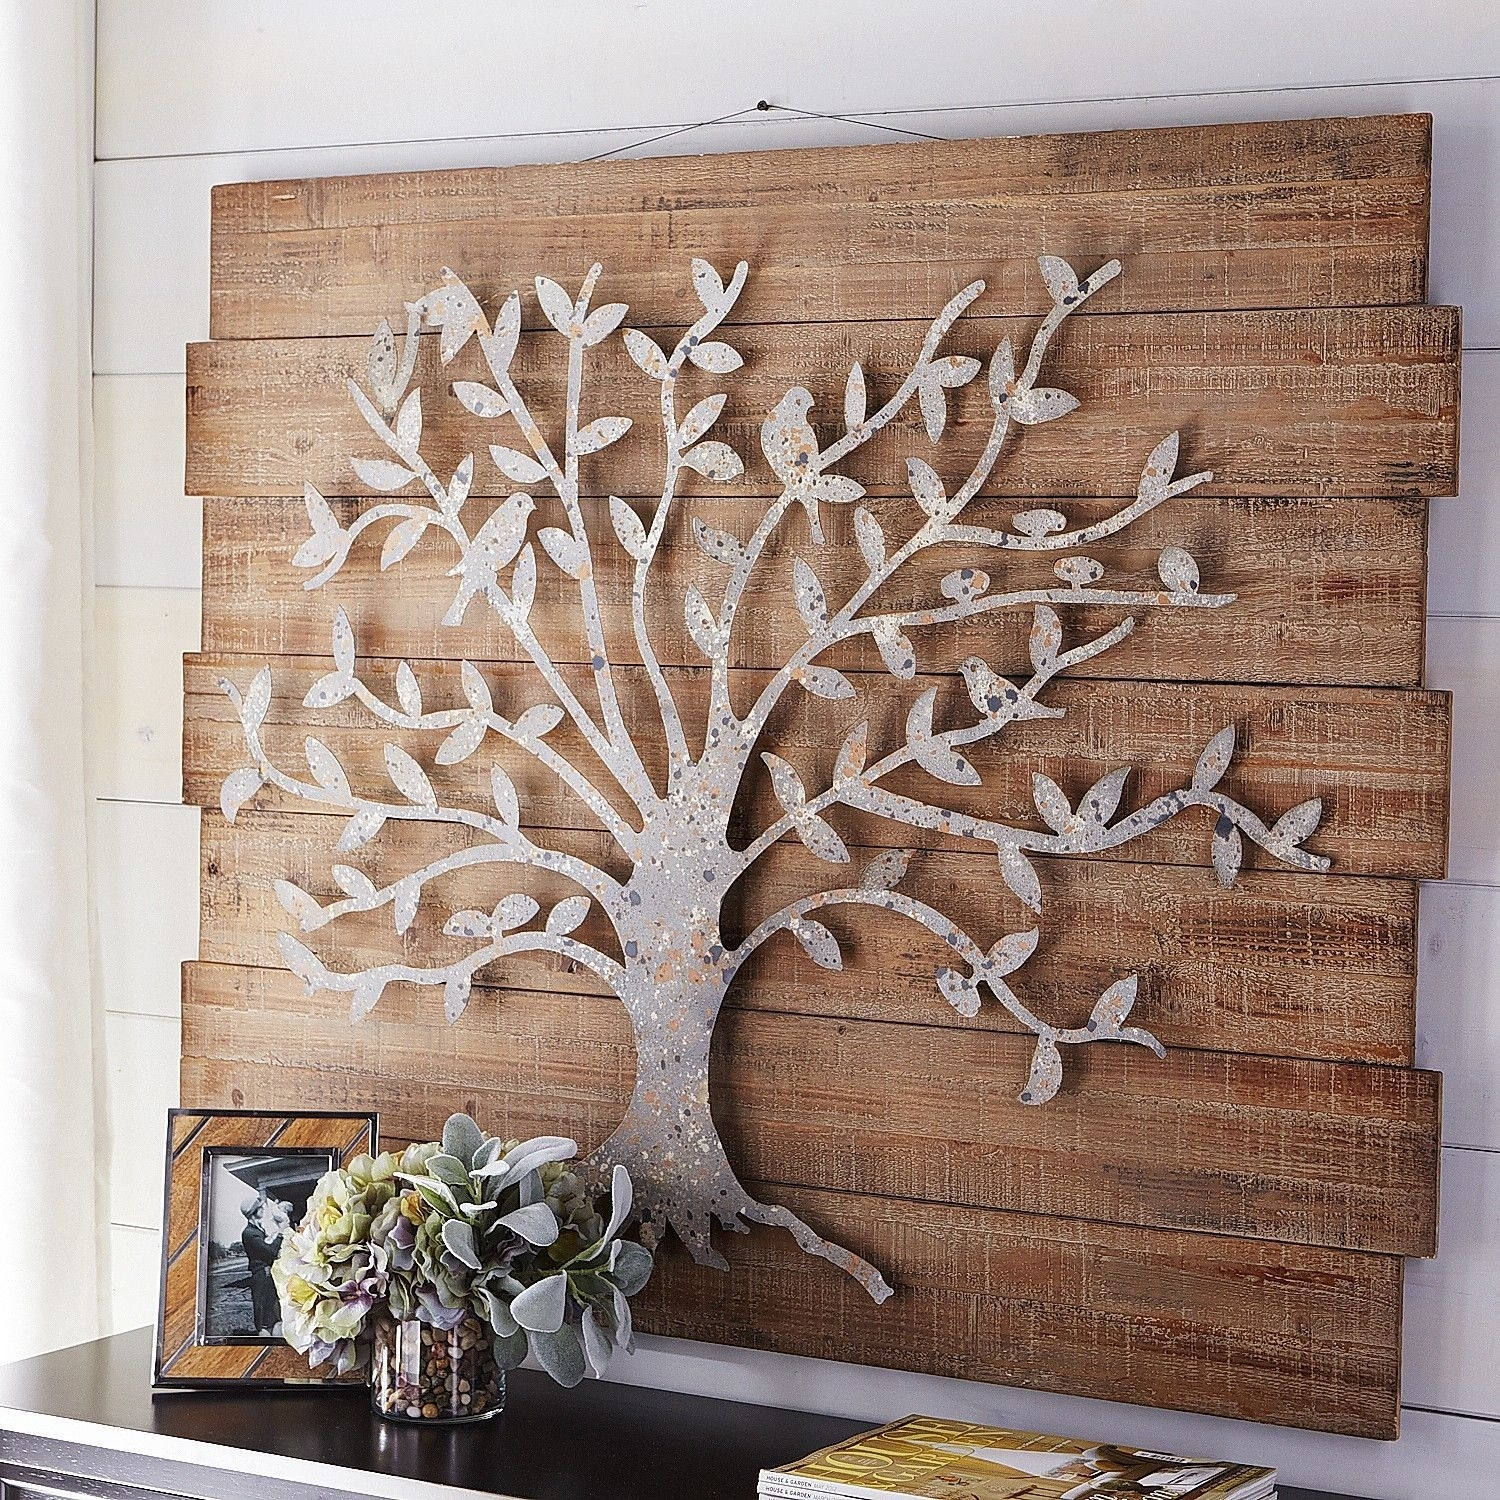 Timeless Tree Wall Decor | Pier 1 Imports … | Metal Work | Pinte… With Regard To Latest Metal Tree Wall Art (View 2 of 15)